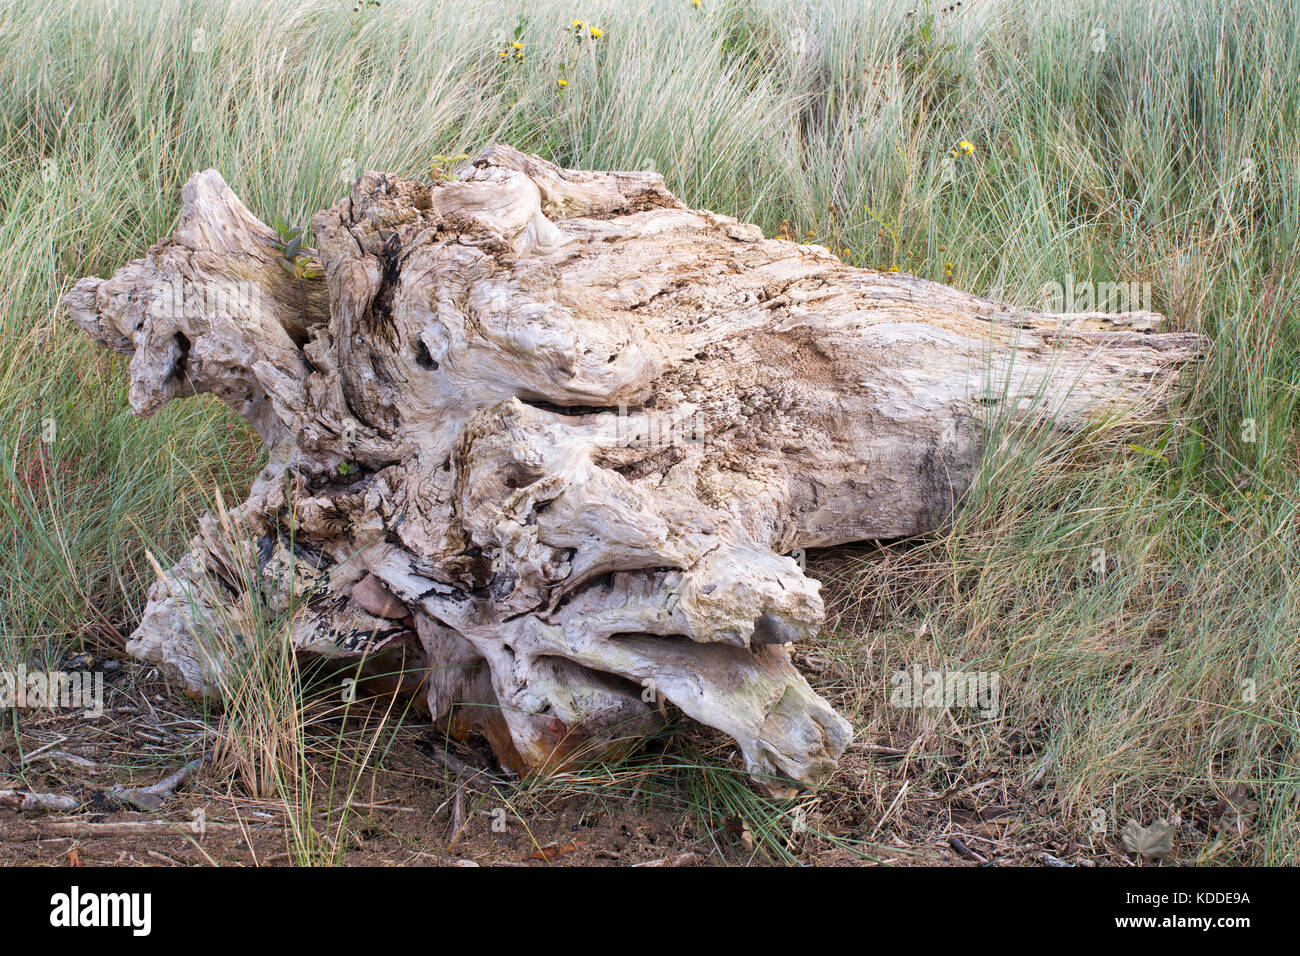 a-sun-bleached-tree-trunk-driftwood-on-t